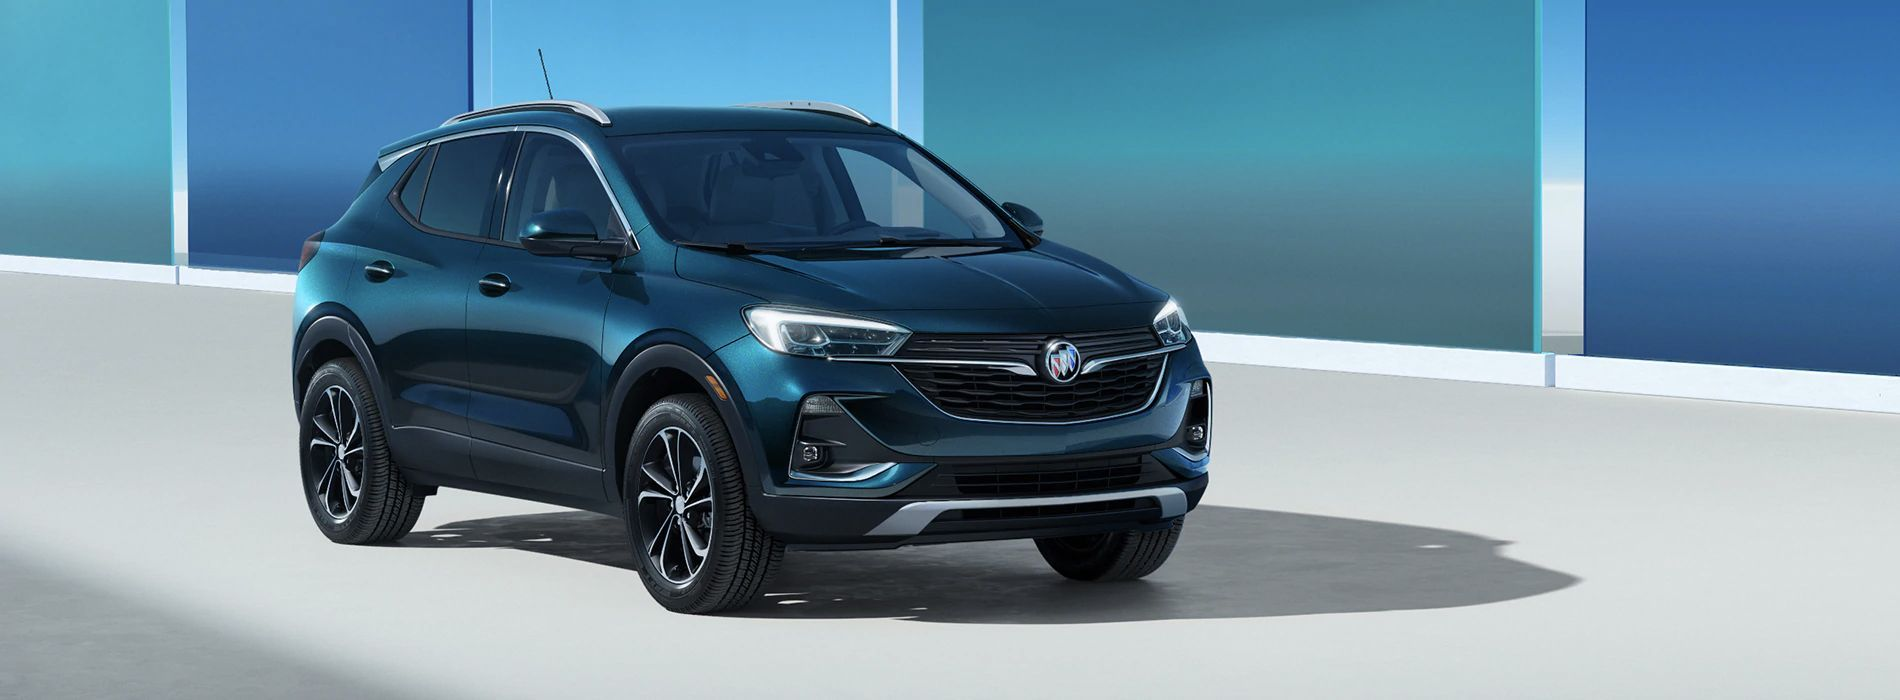 Car Industry Latest News Updates Autodeals Pk In 2020 Buick Encore Buick Small Suv